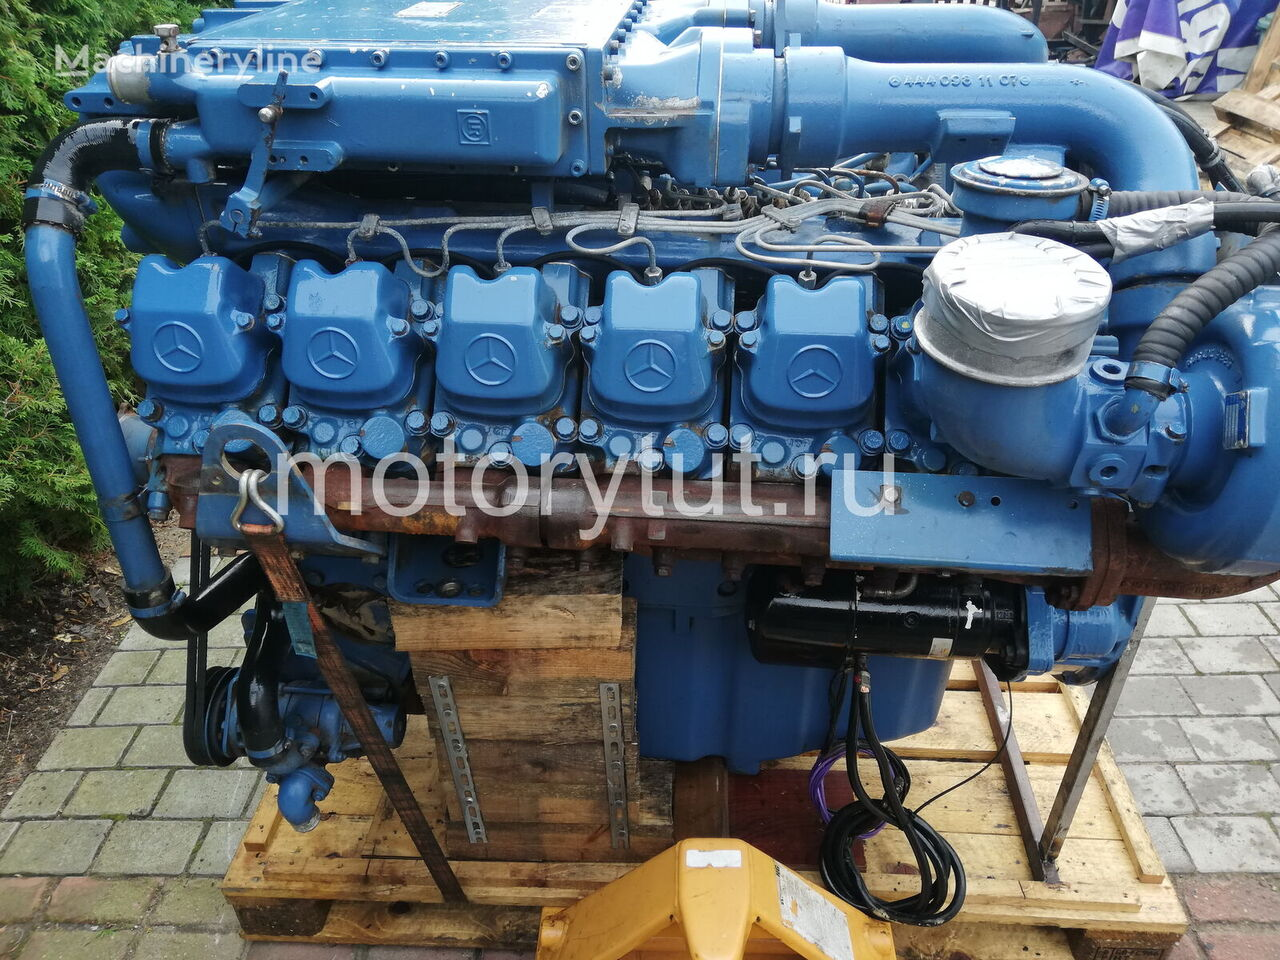 MERCEDES-BENZ OM444LA (444.901) engine for WIRTGEN WR 2500 recycler